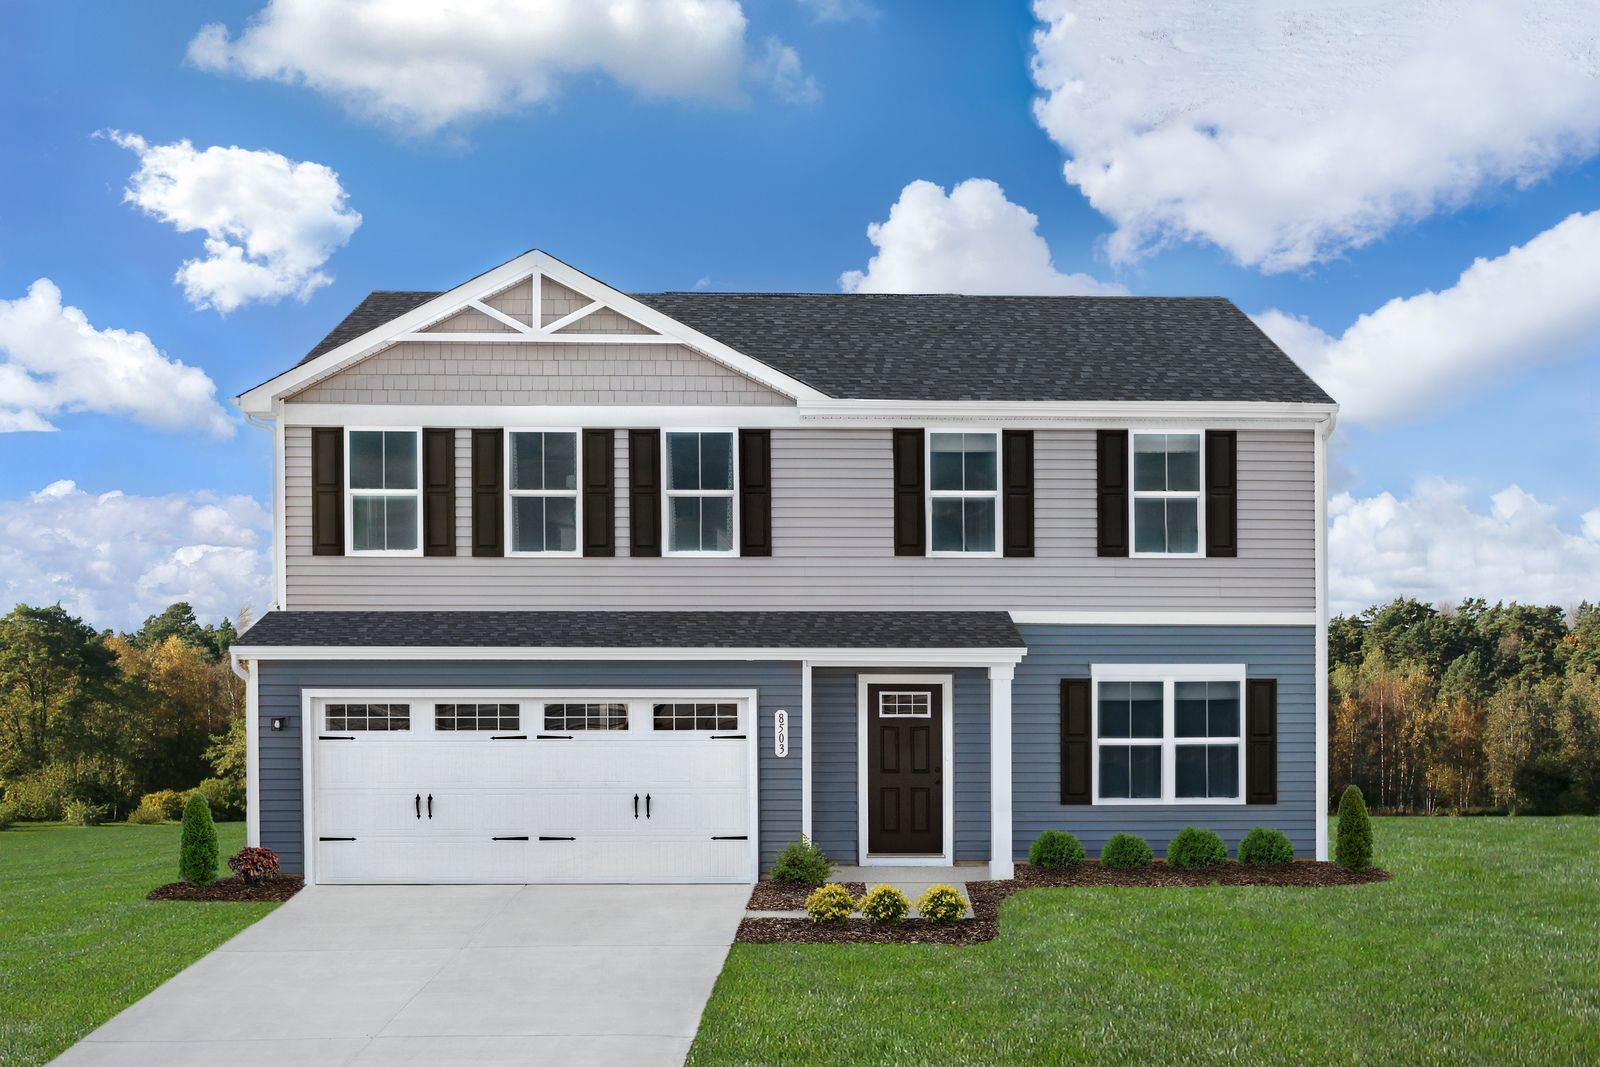 BEST-PRICED NEW HOMES IN CLARK-SHAWNEE SCHOOLS AT BRIDGEWATER:Brand new everything, up to 5 bedrooms, no money down options, & 6 minutes to I-70! From the $190s.Click here to schedule your visit today!